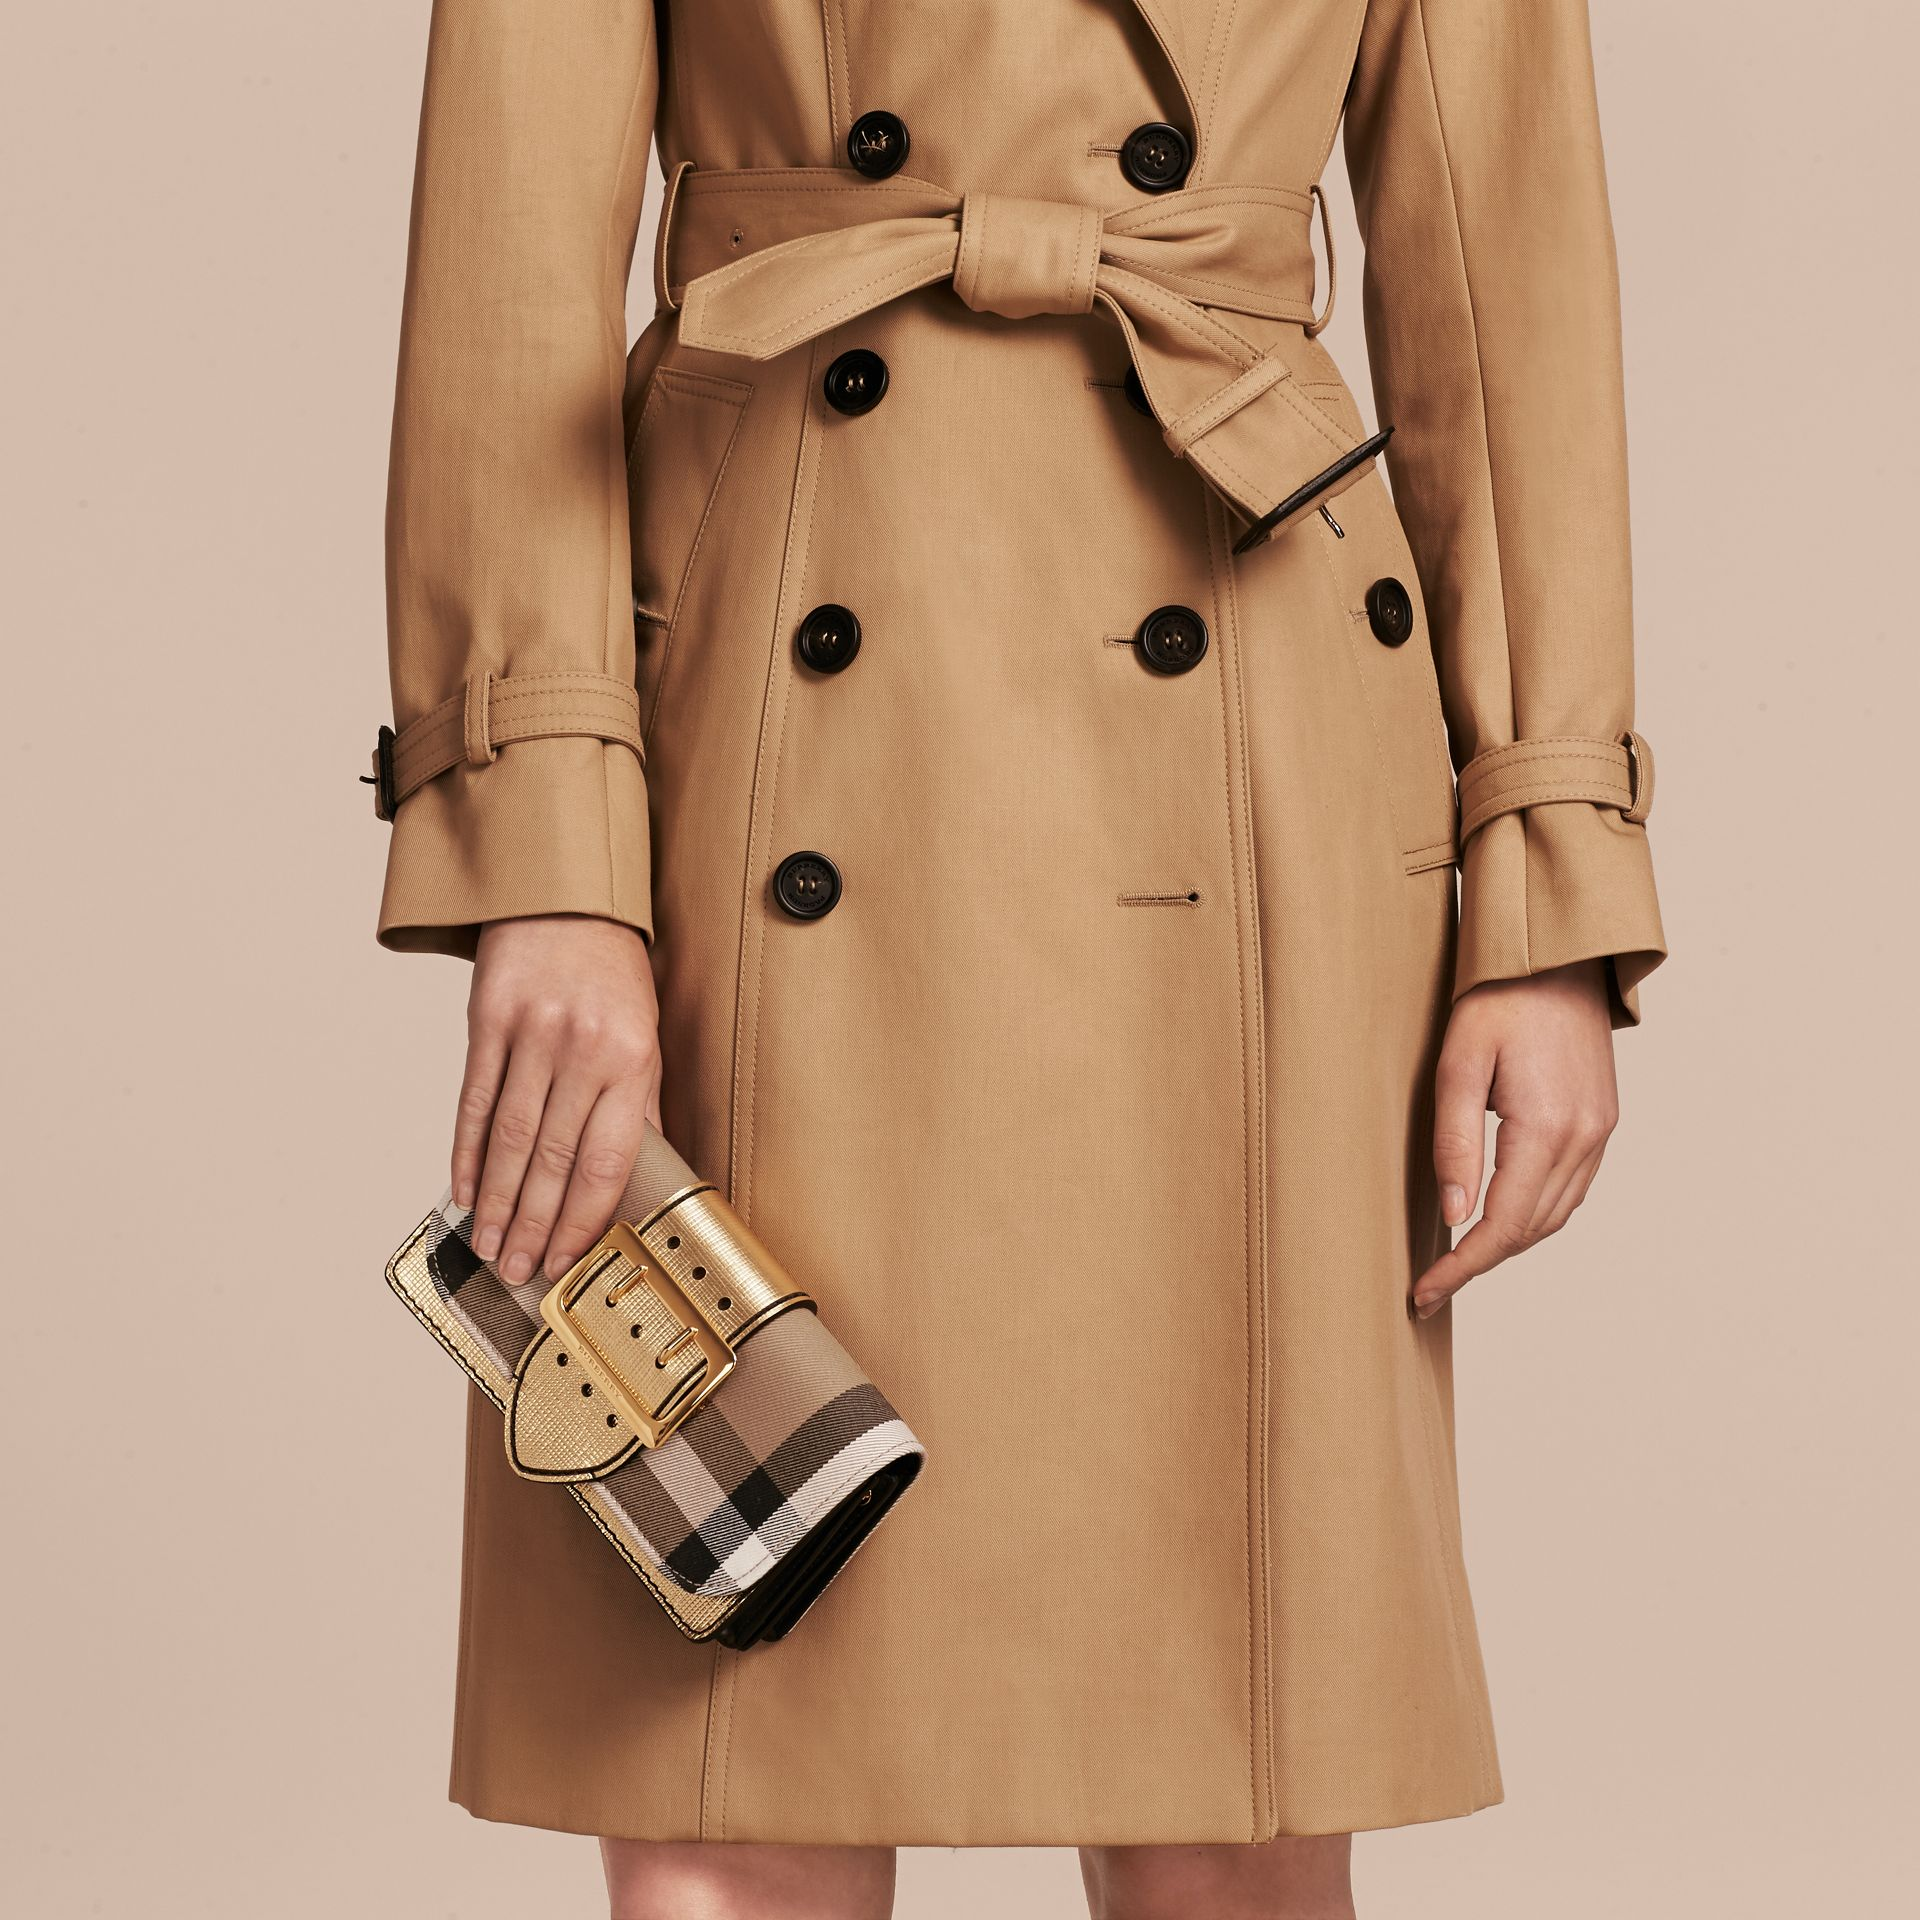 The Small Buckle Bag in House Check and Leather in Gold - Women | Burberry Singapore - gallery image 3